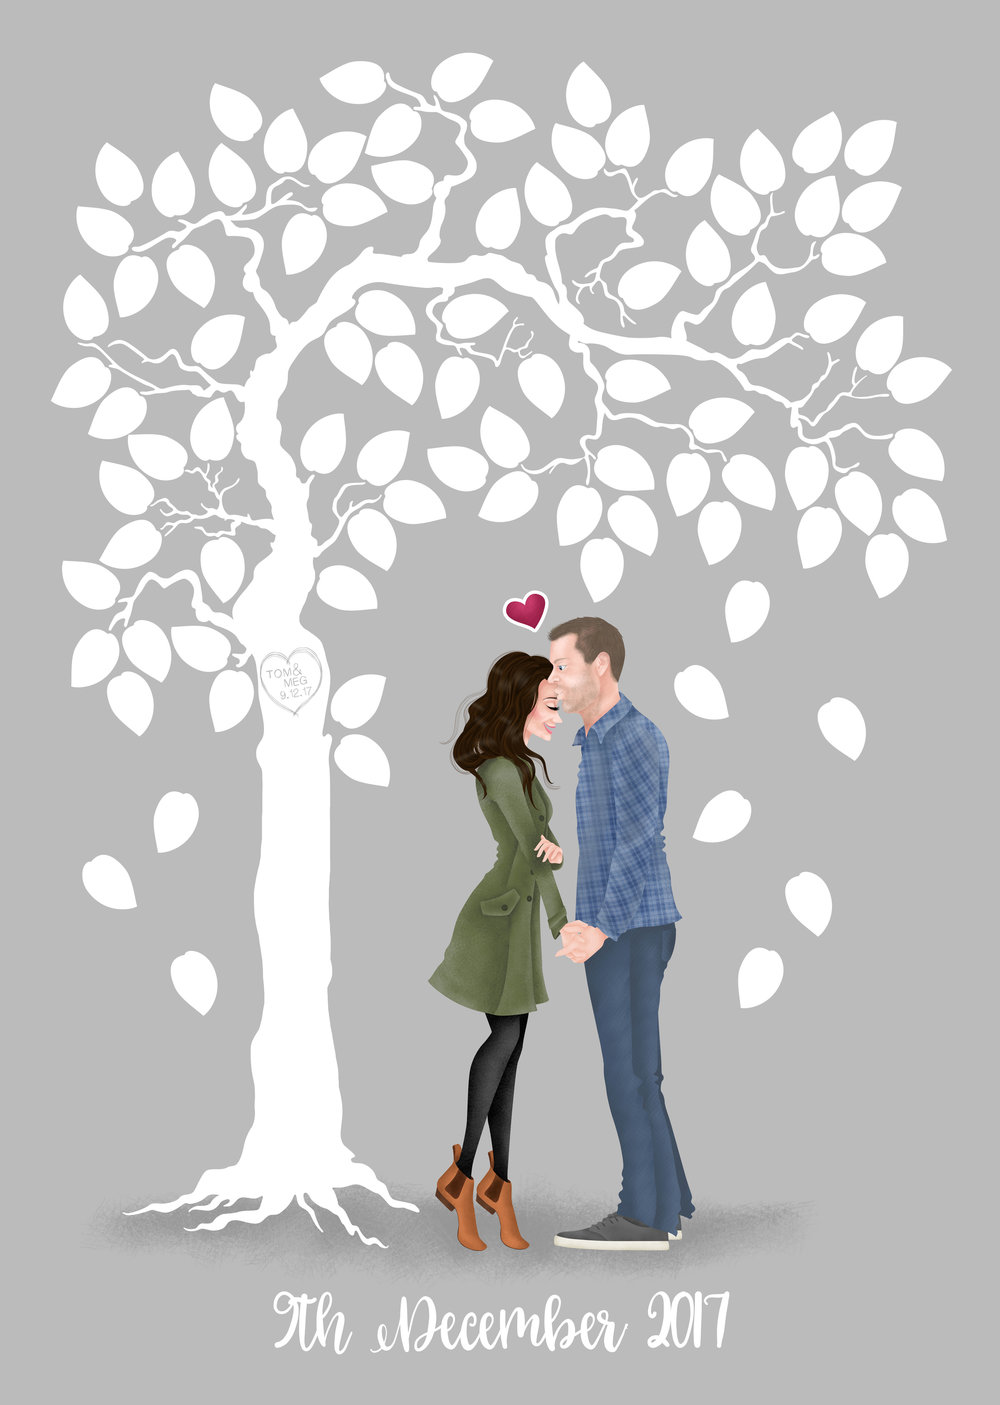 Hannah Weeks Illustration - Tom and Meg Fingerprint Tree - A2 plus 5mm bleed.jpg